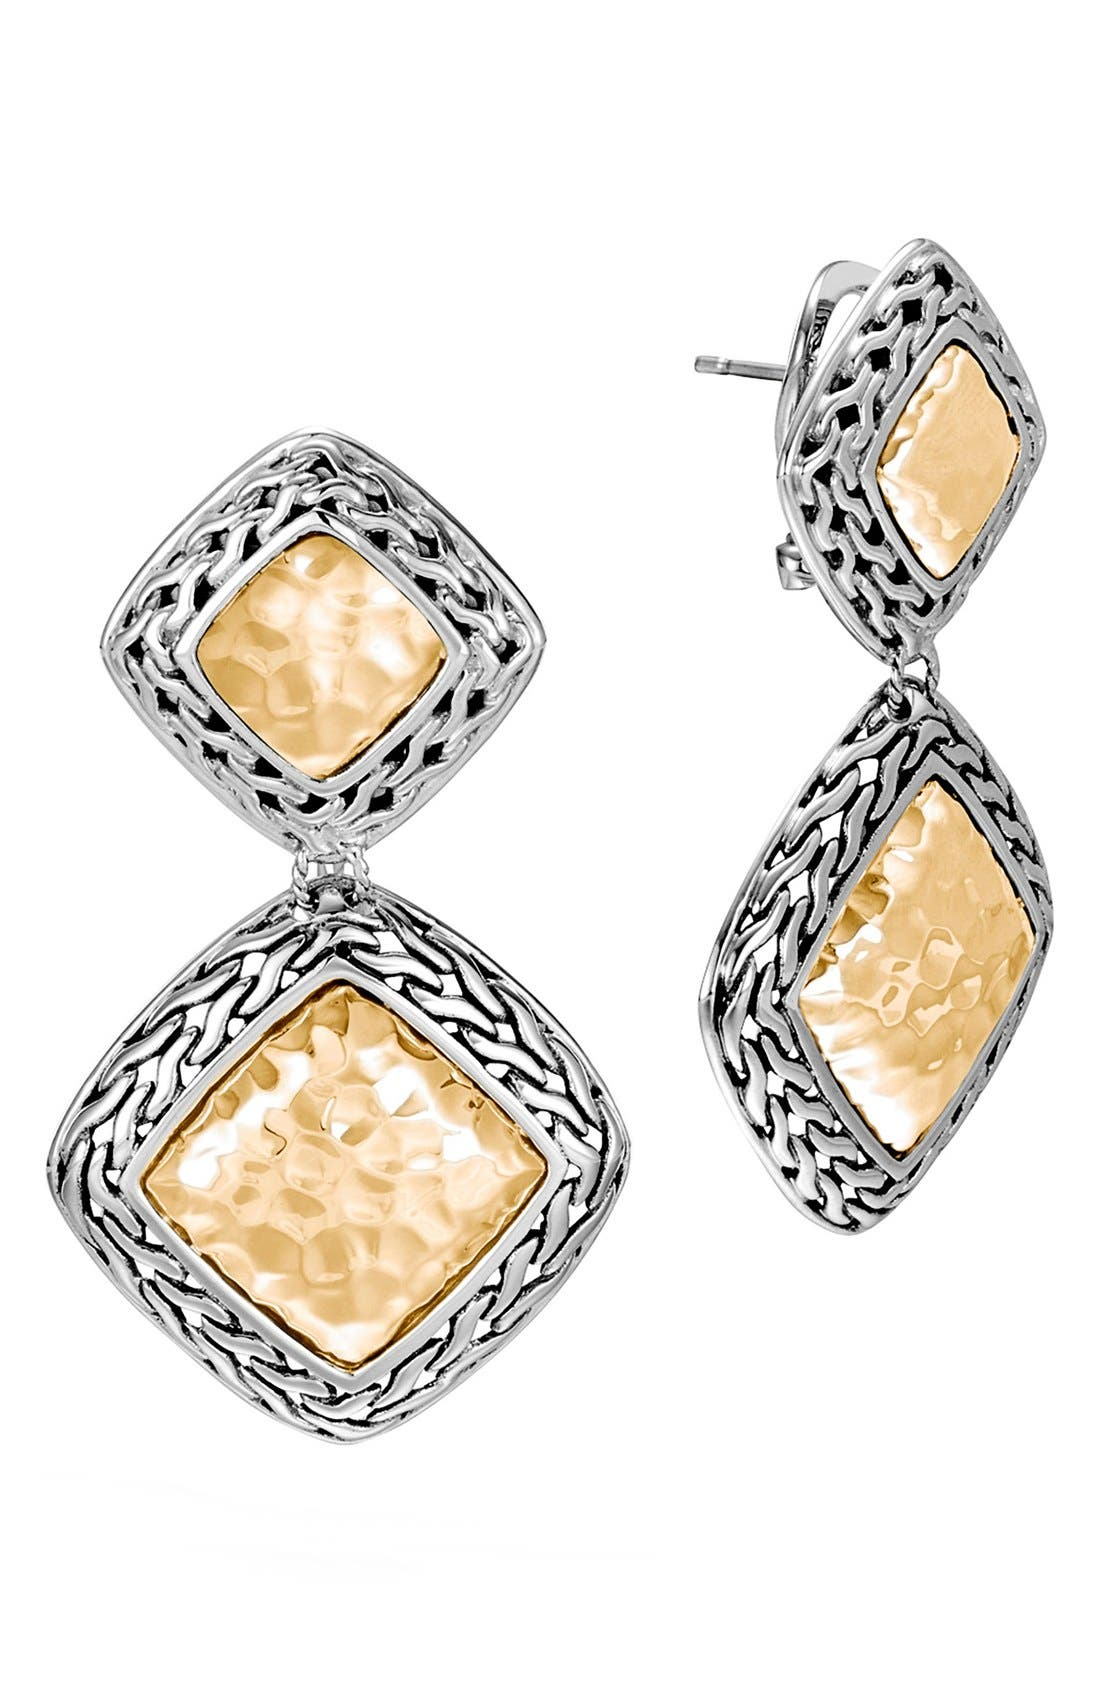 Heritage Drop Earrings,                         Main,                         color, SILVER/ GOLD